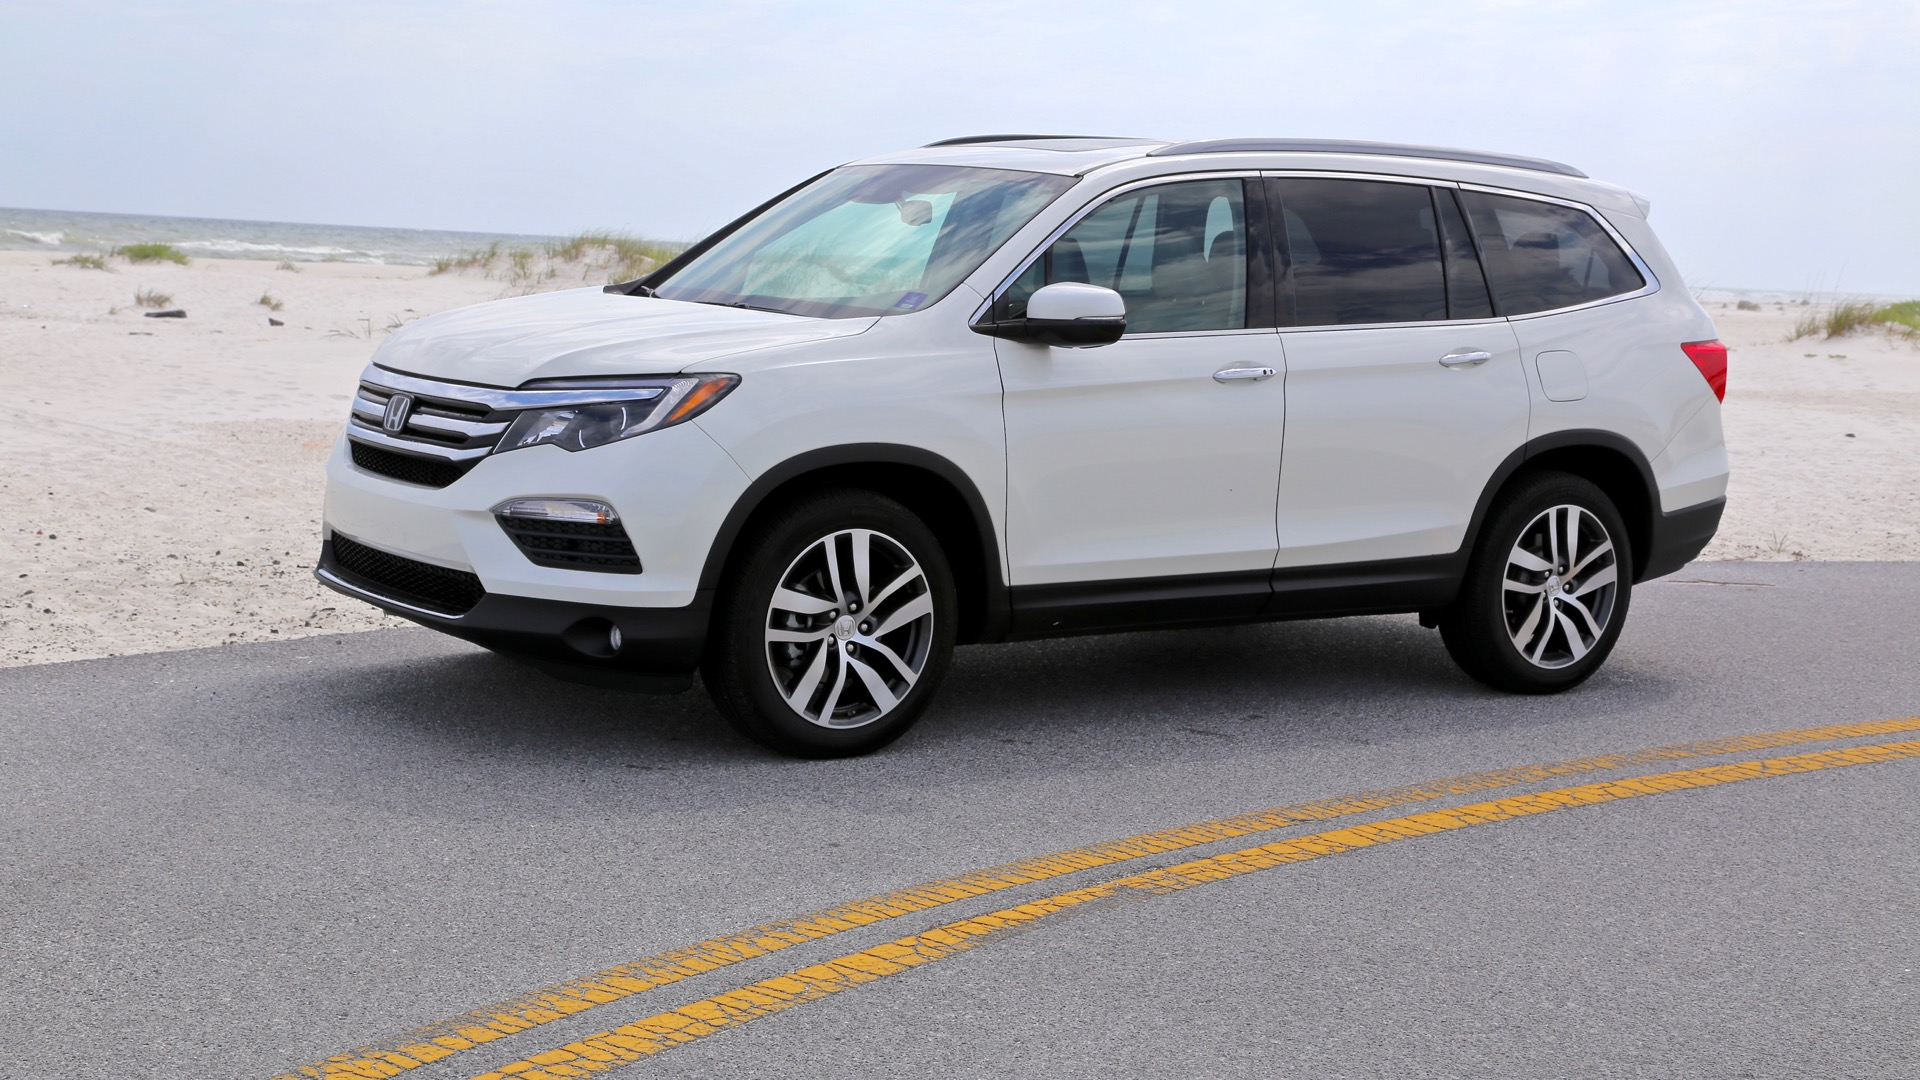 2016 honda pilot touring long term road test what we 39 d change for Honda pilot images